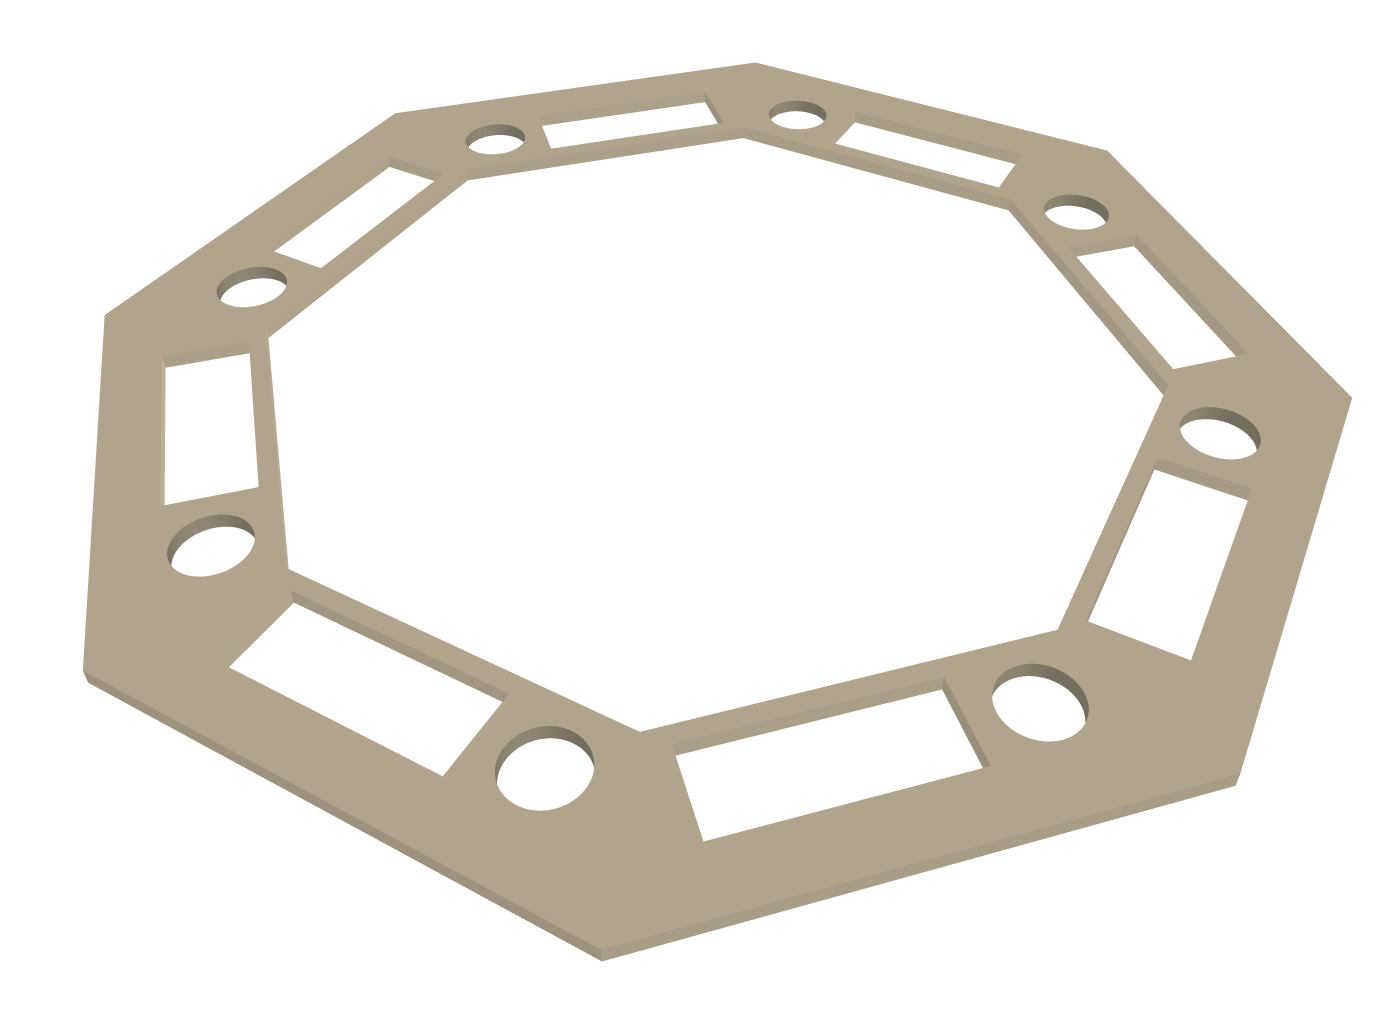 Octagon Poker Table Part 1 Plans And Materials Brian